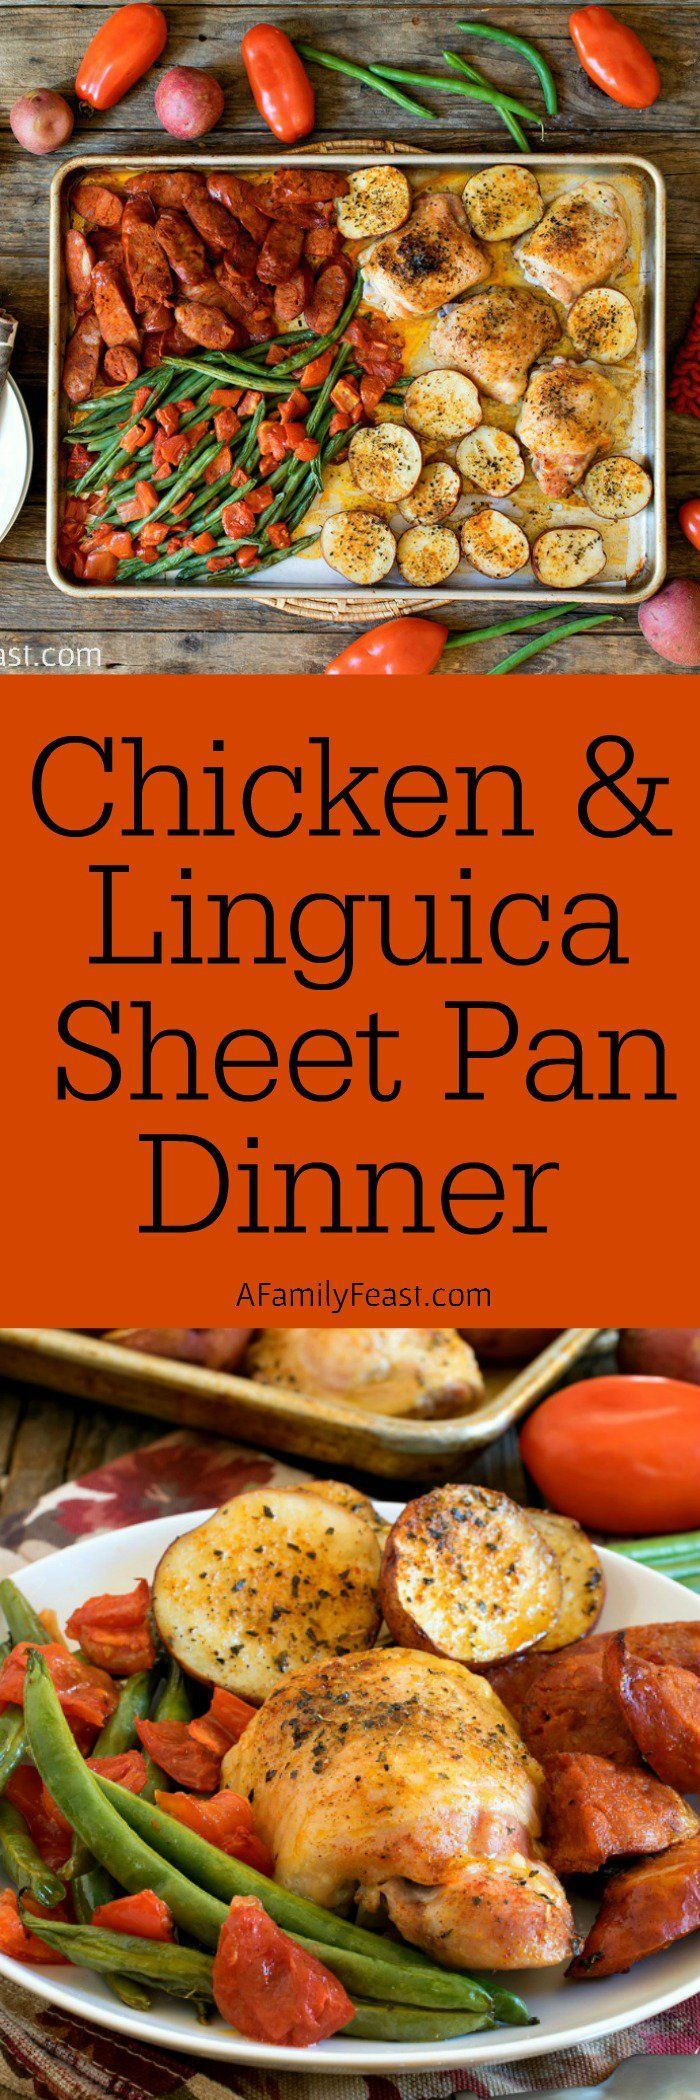 how to cook linguica in a pan